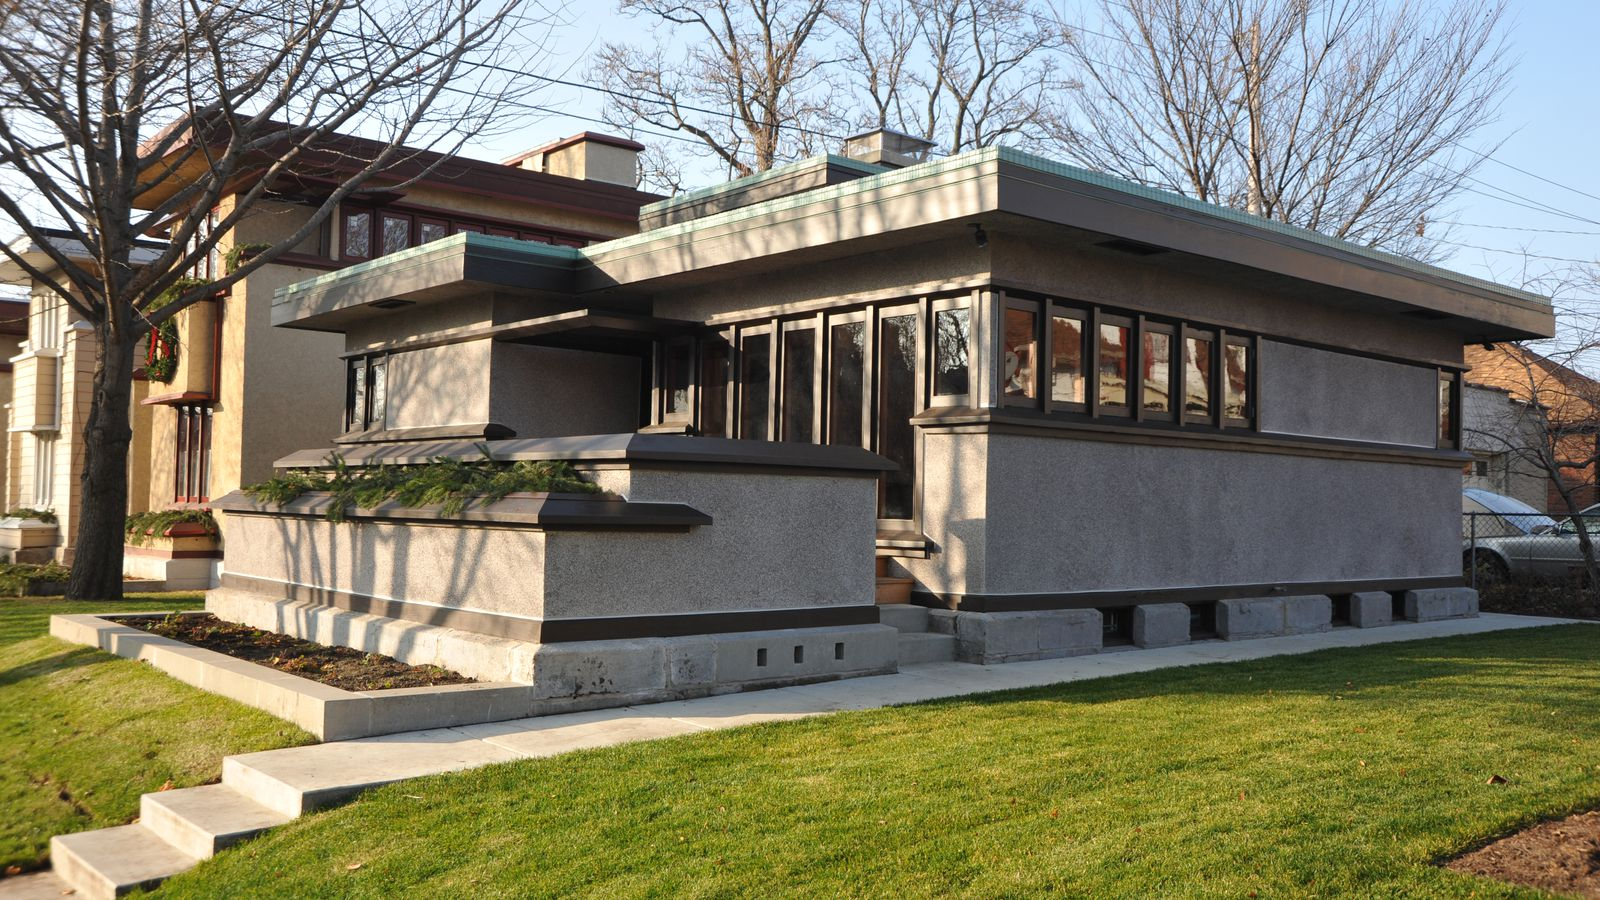 frank lloyd wright s forgotten prefabs curbed. Black Bedroom Furniture Sets. Home Design Ideas